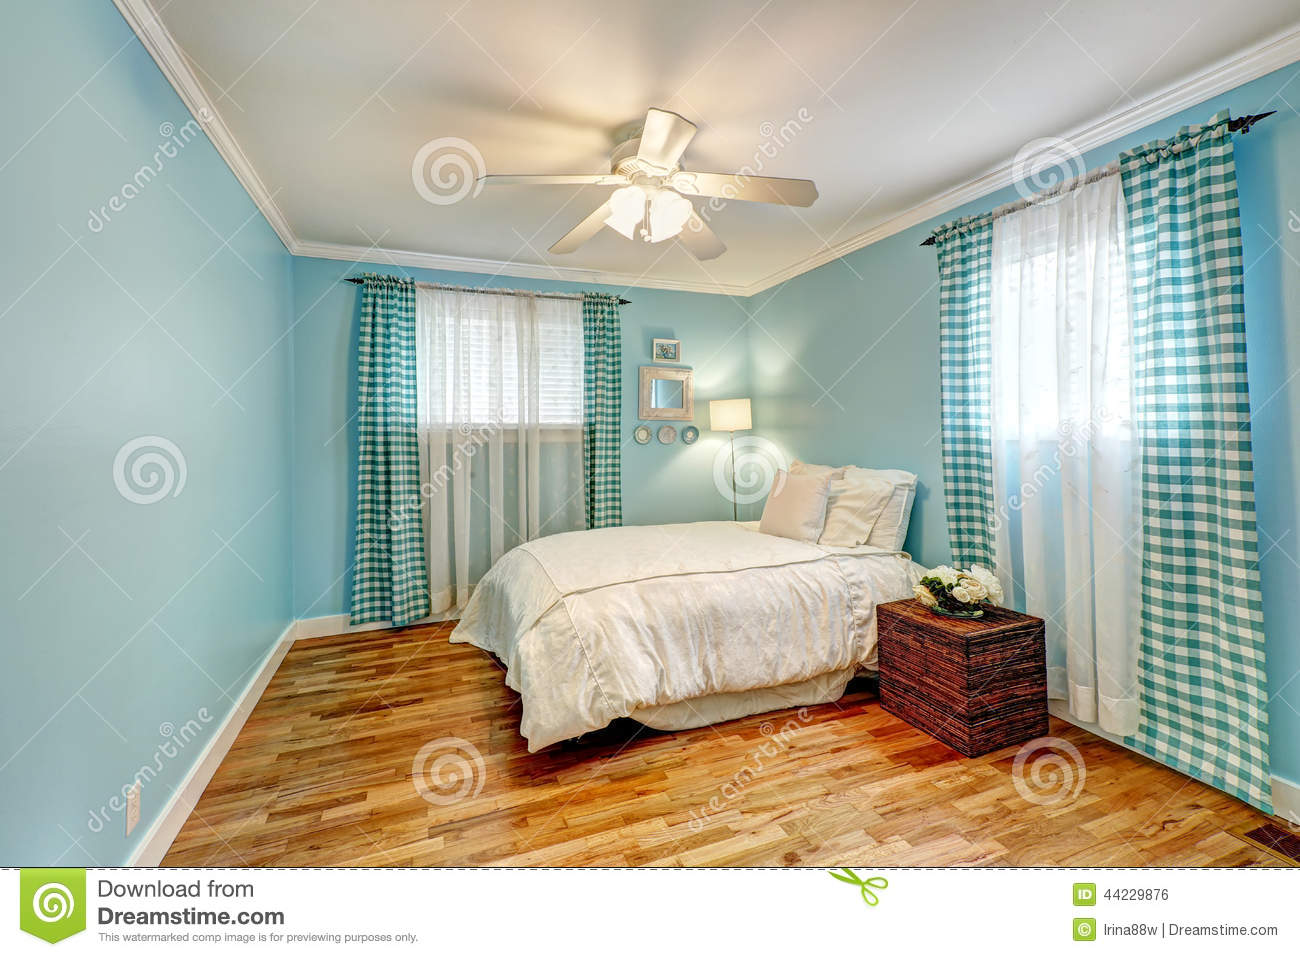 Cheerful light blue bedroom stock photo image 44229876 for White and blue bedroom curtains